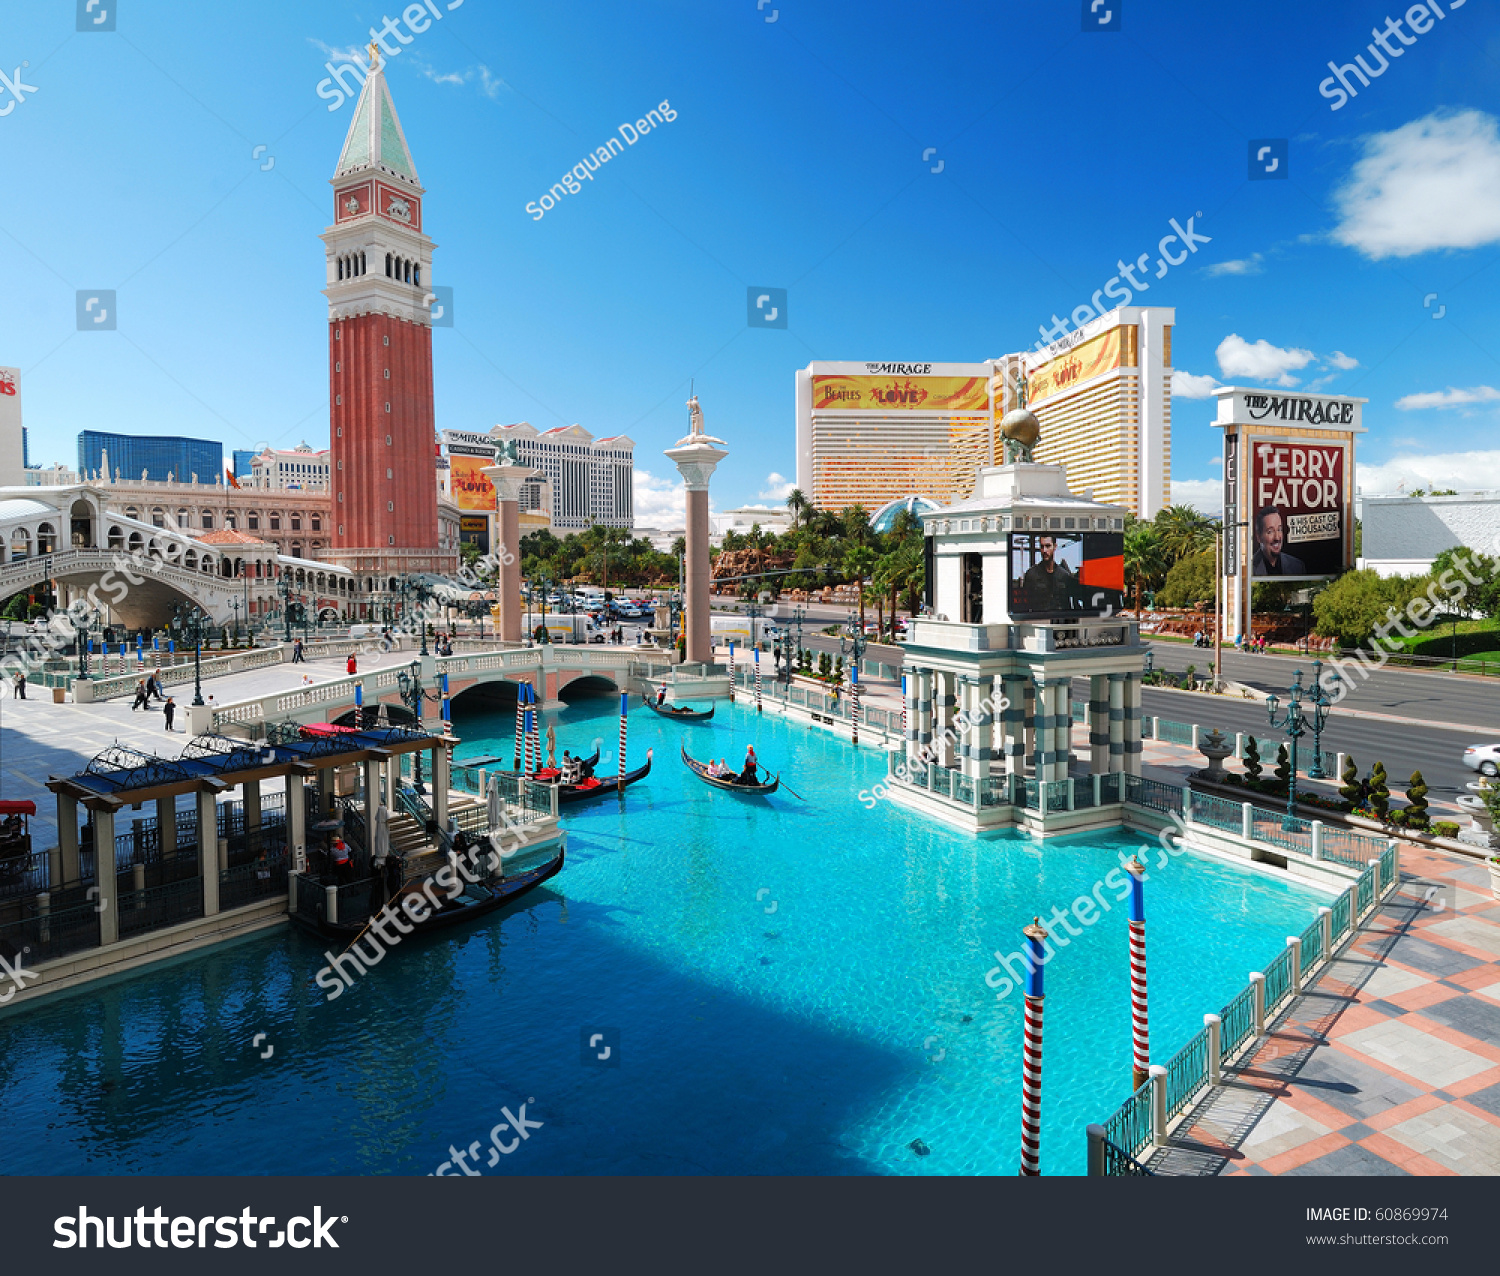 How tall is the venetian casino in nevada casino host mirage las vegas